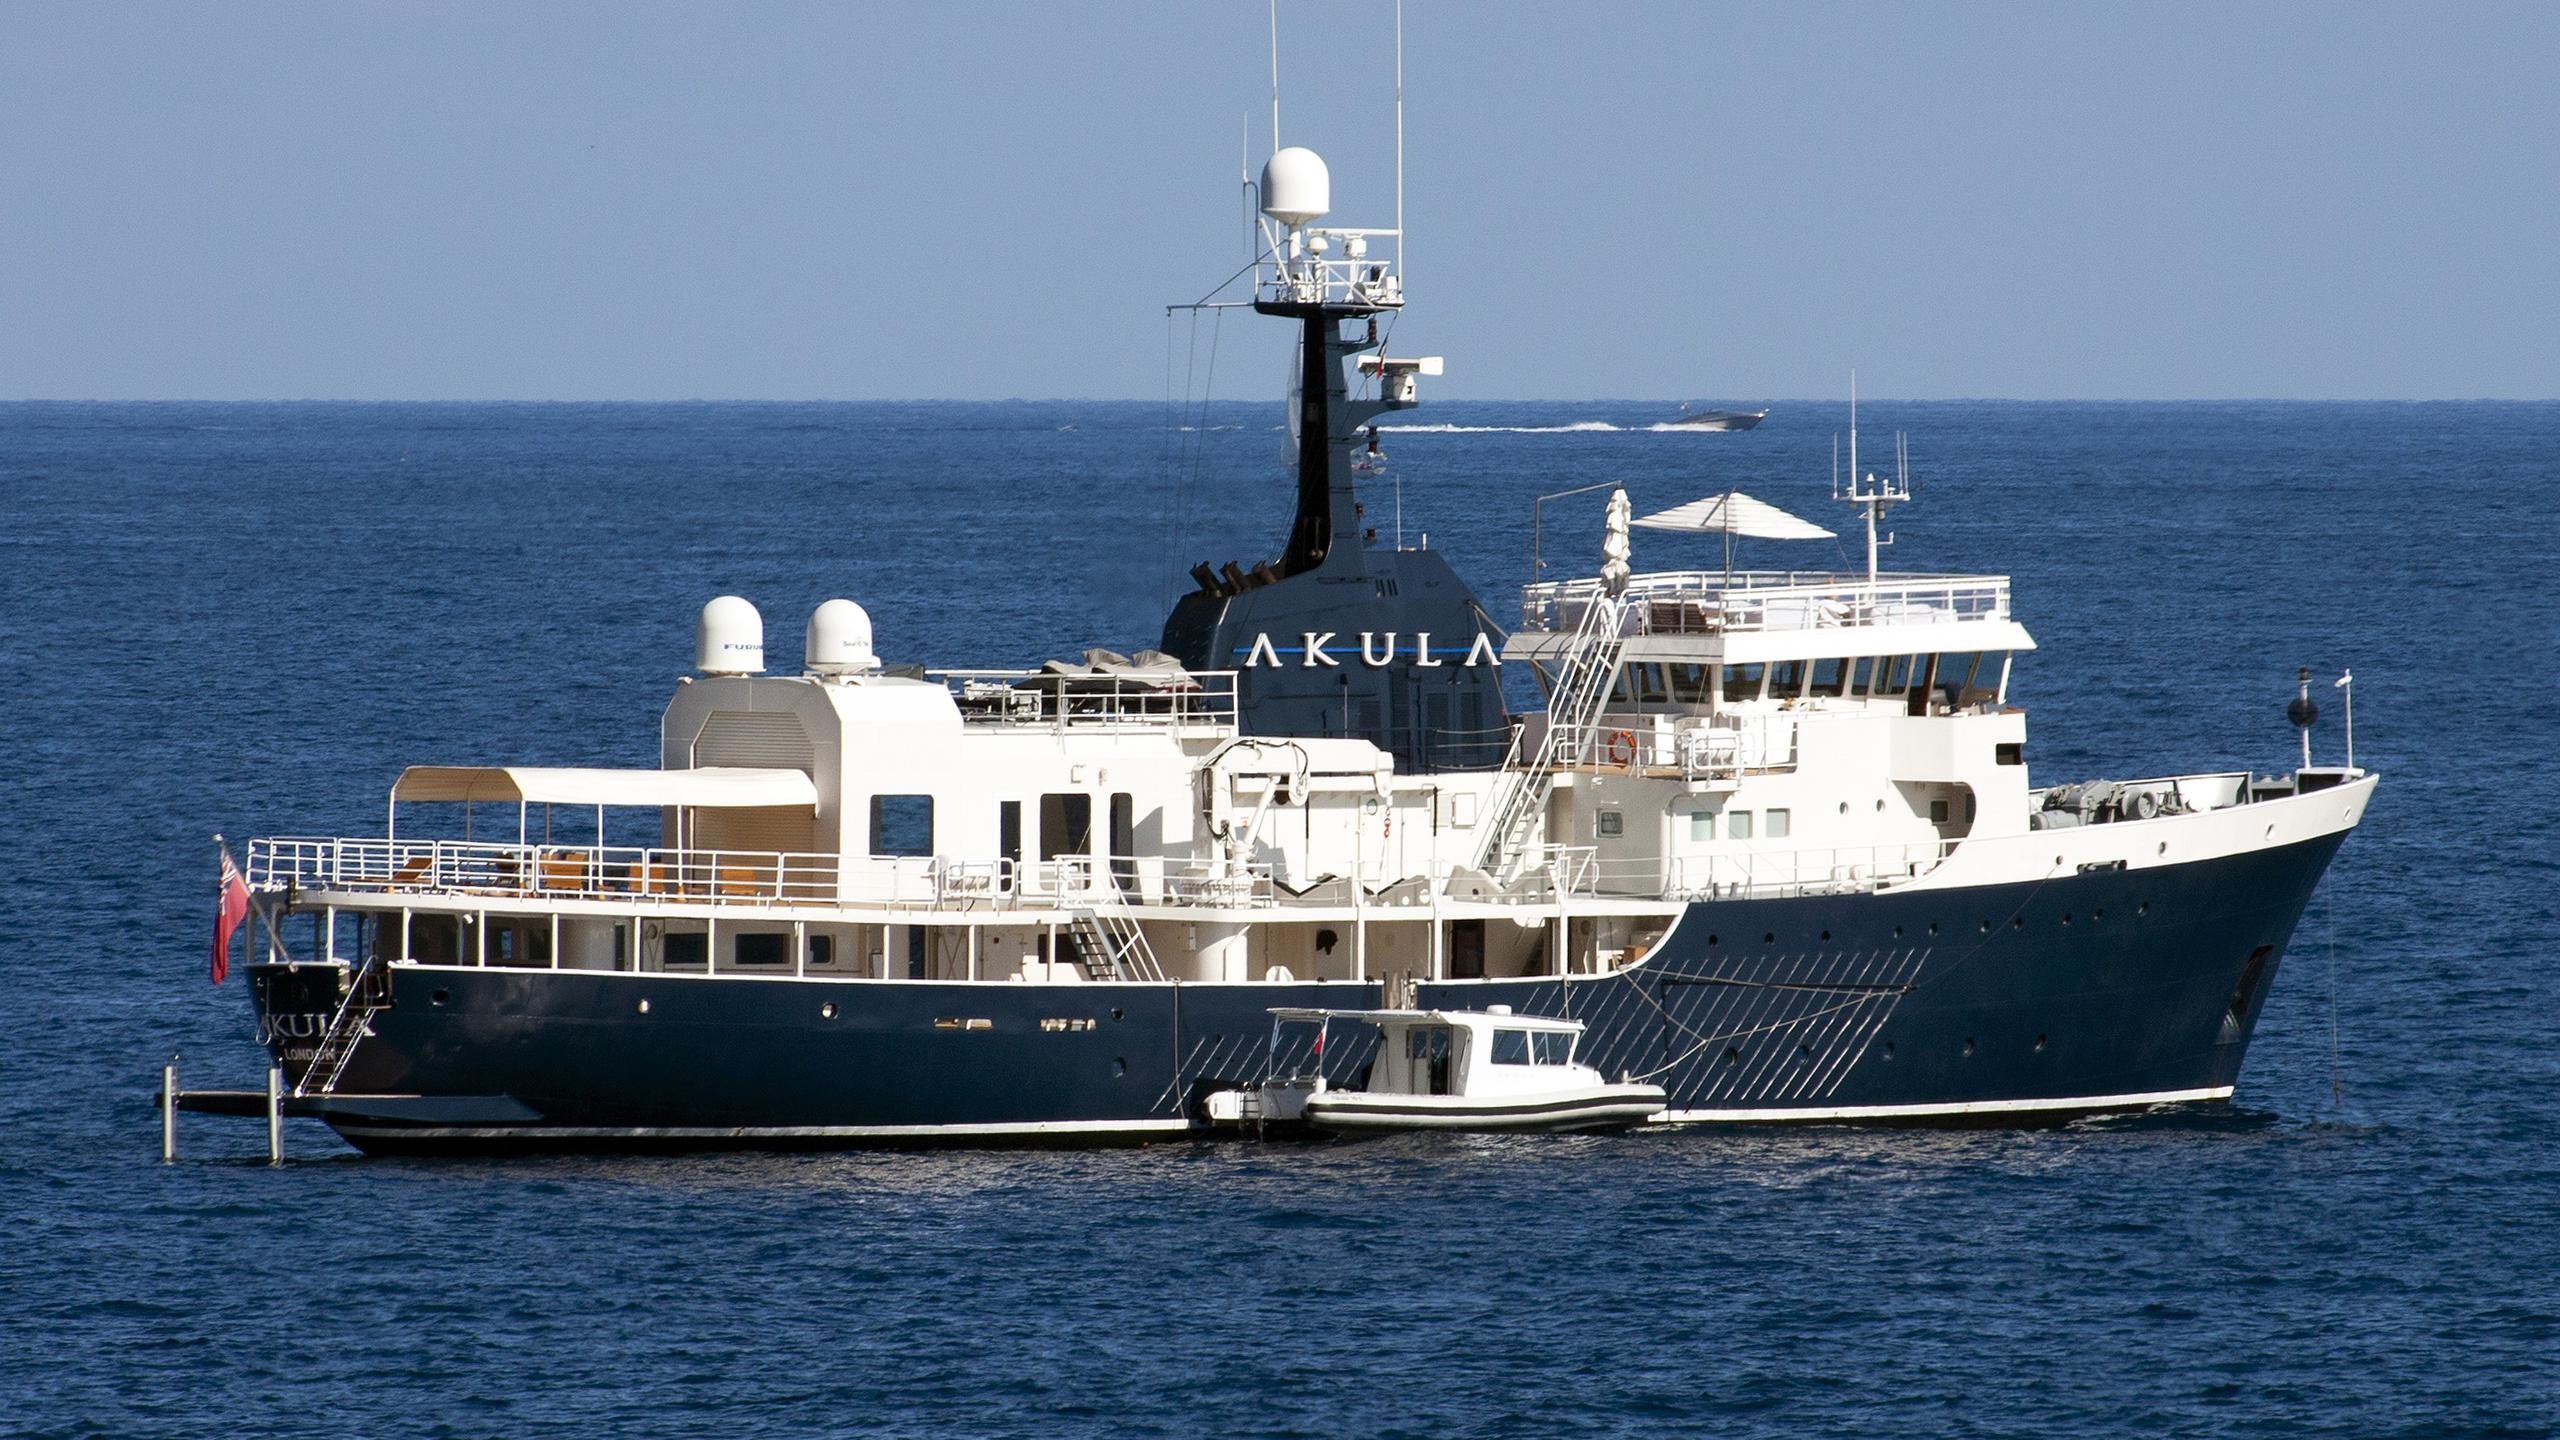 akula-expedition-yacht-amels-1974-59m-stern-profile